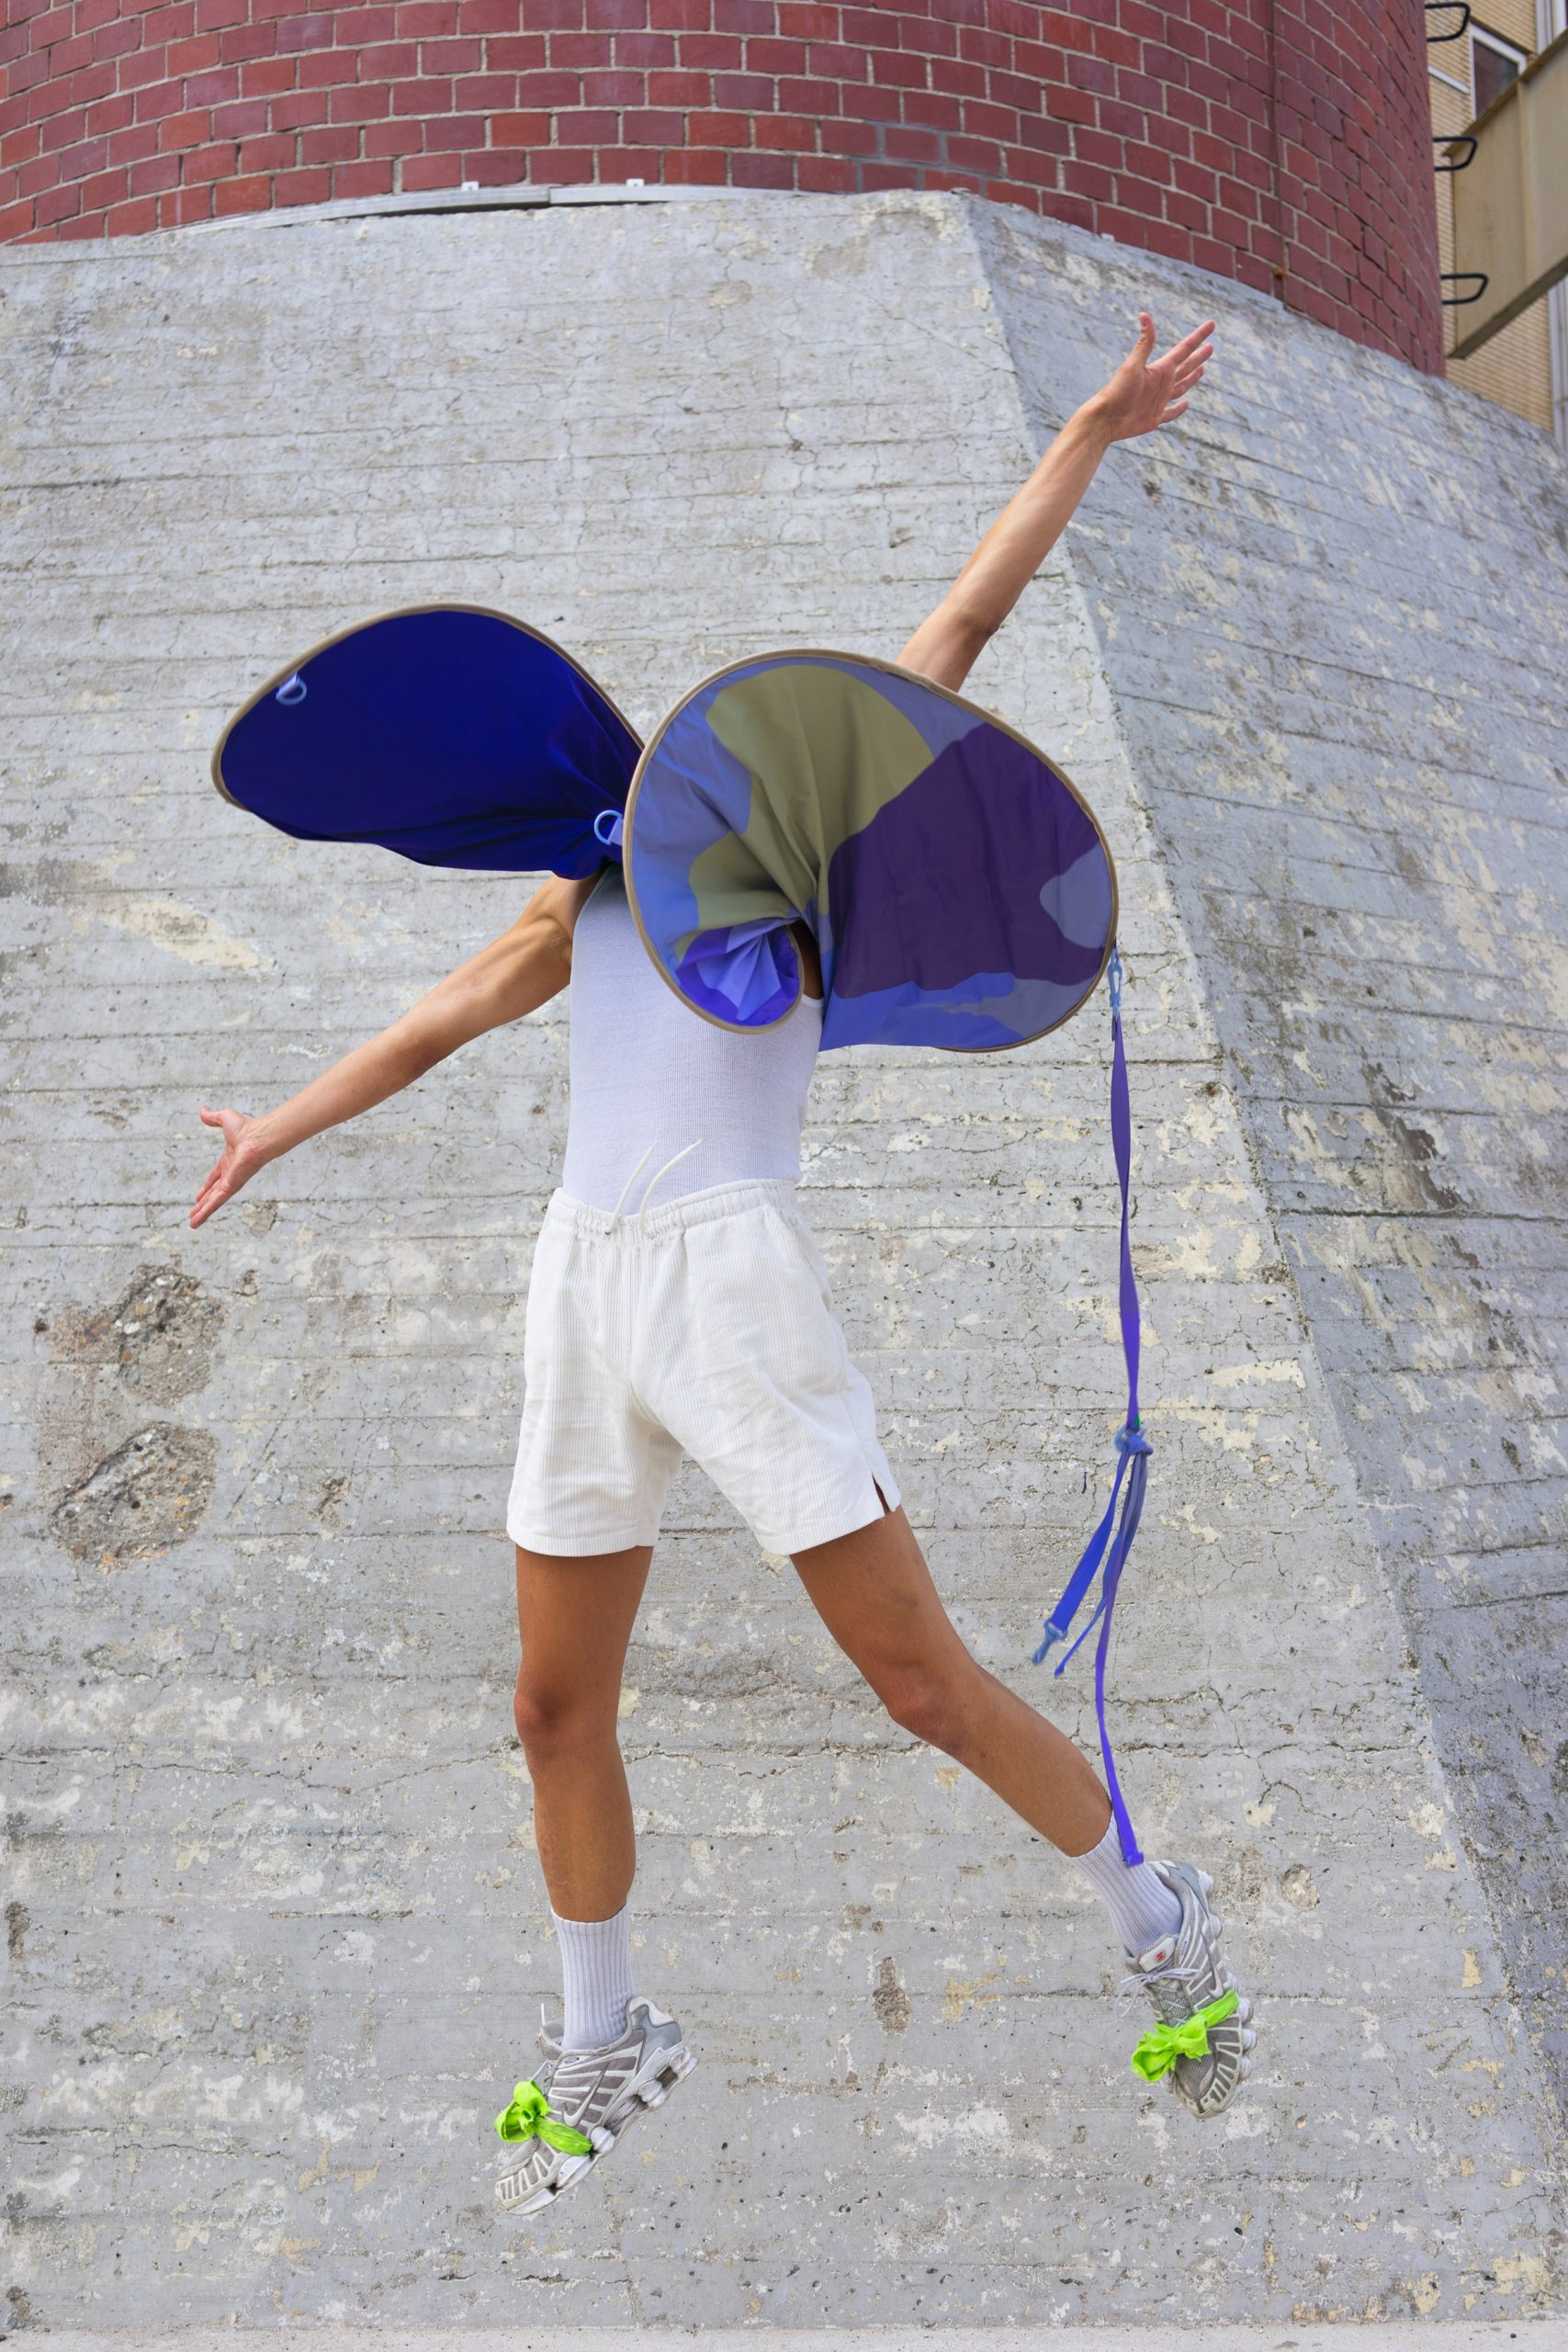 Person wearing a distance keeper from the Bounding Spaces collection by Anna-Sophie Dienemann